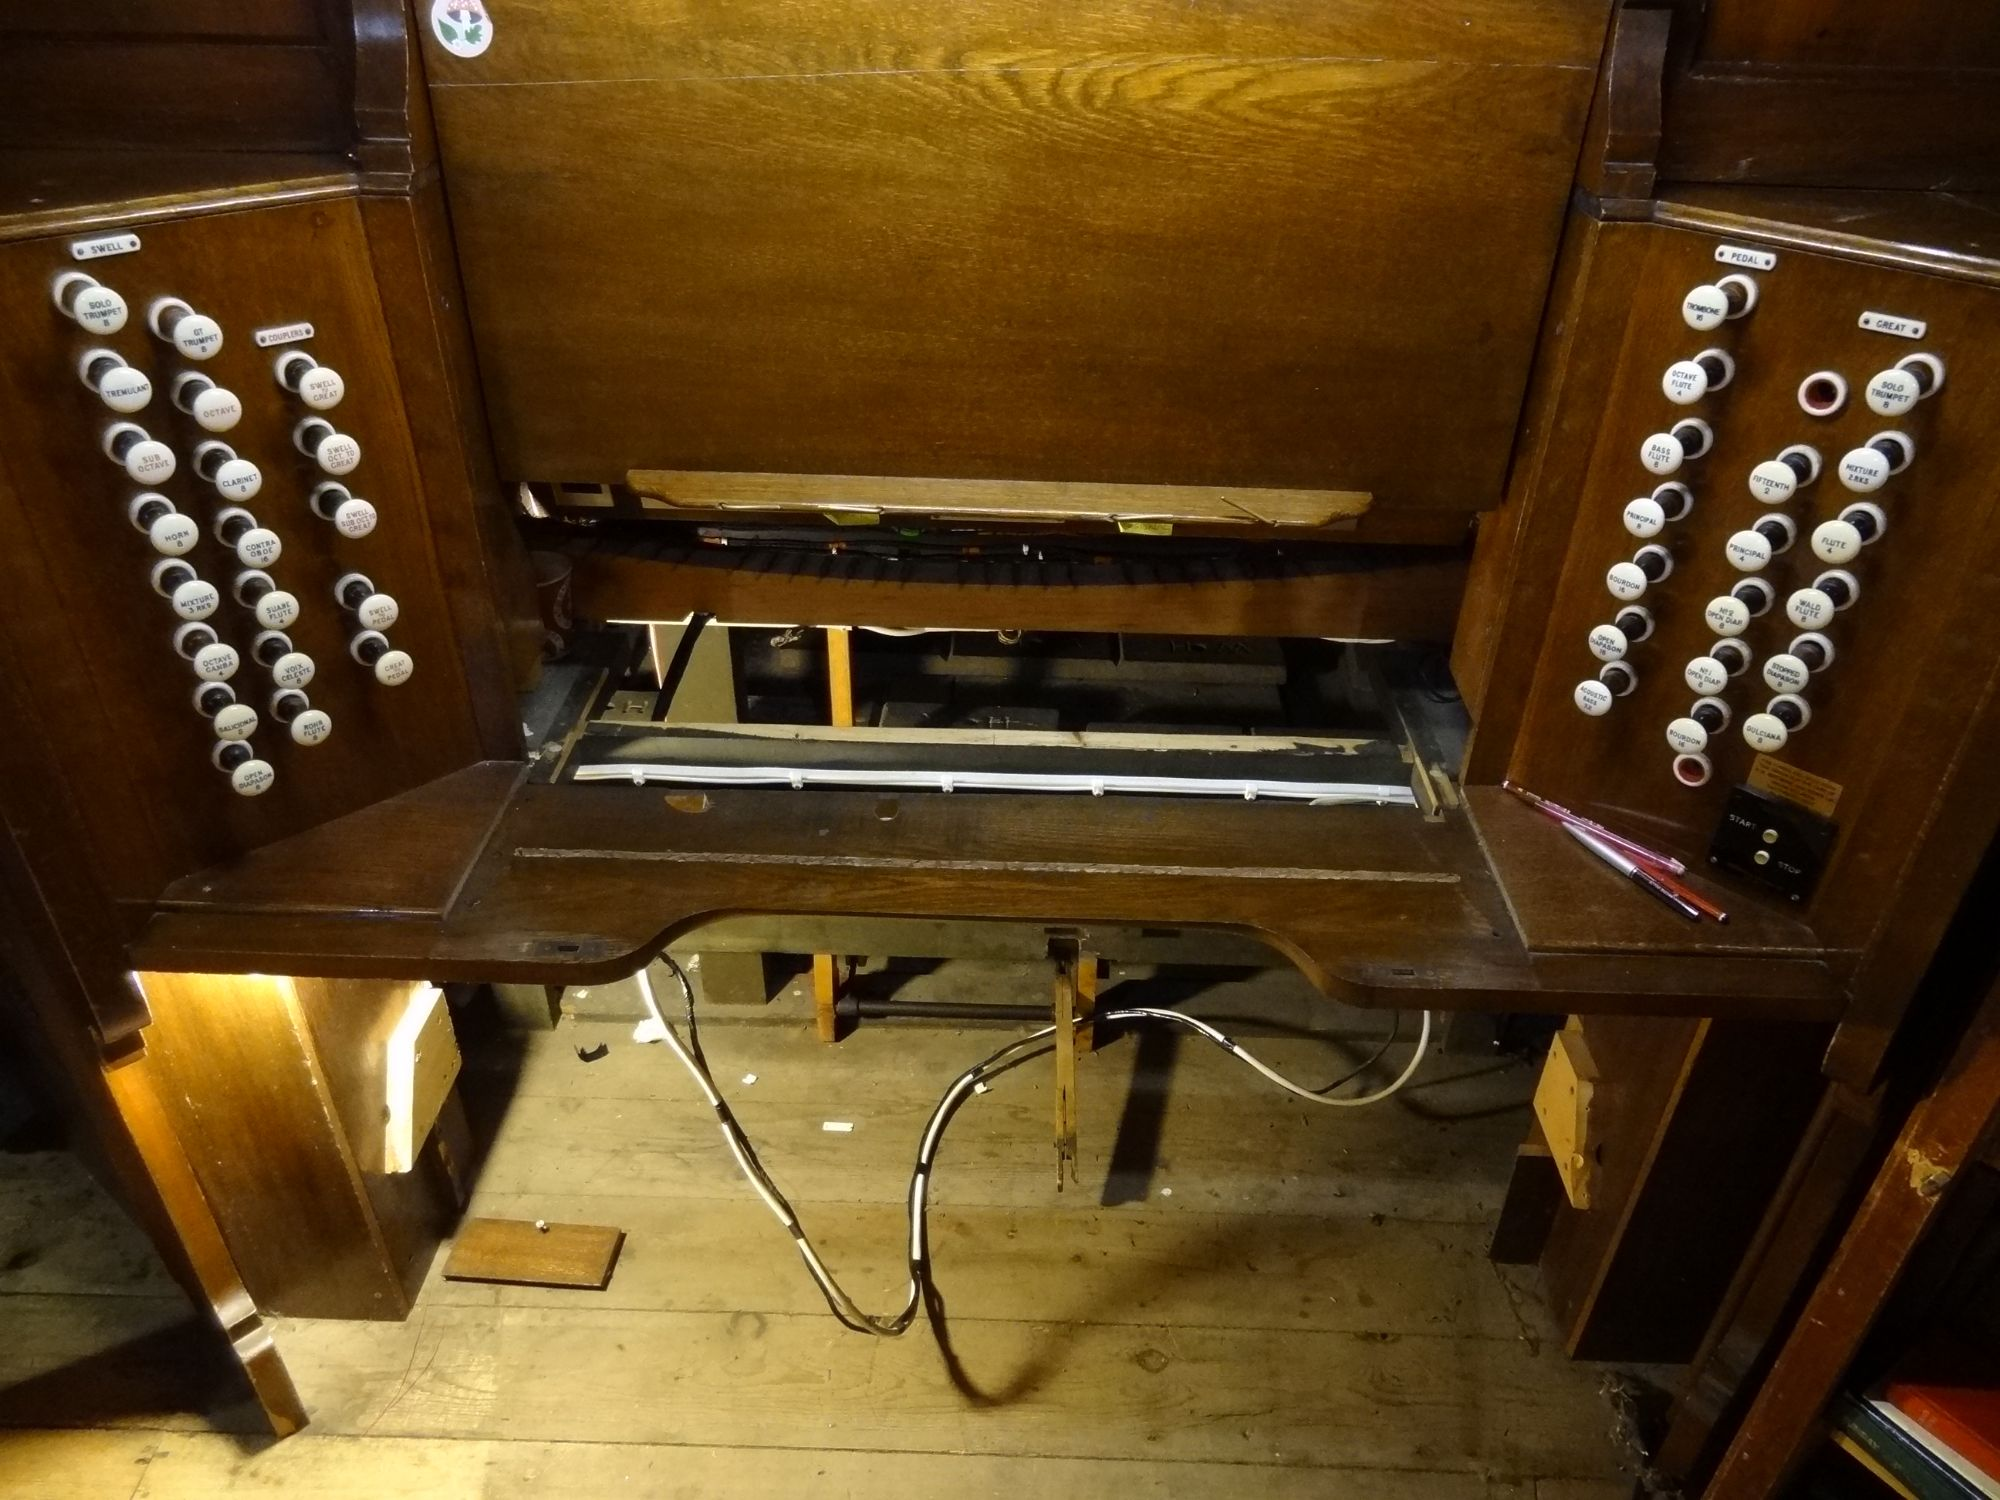 Organ with keyboards and pedal board removed